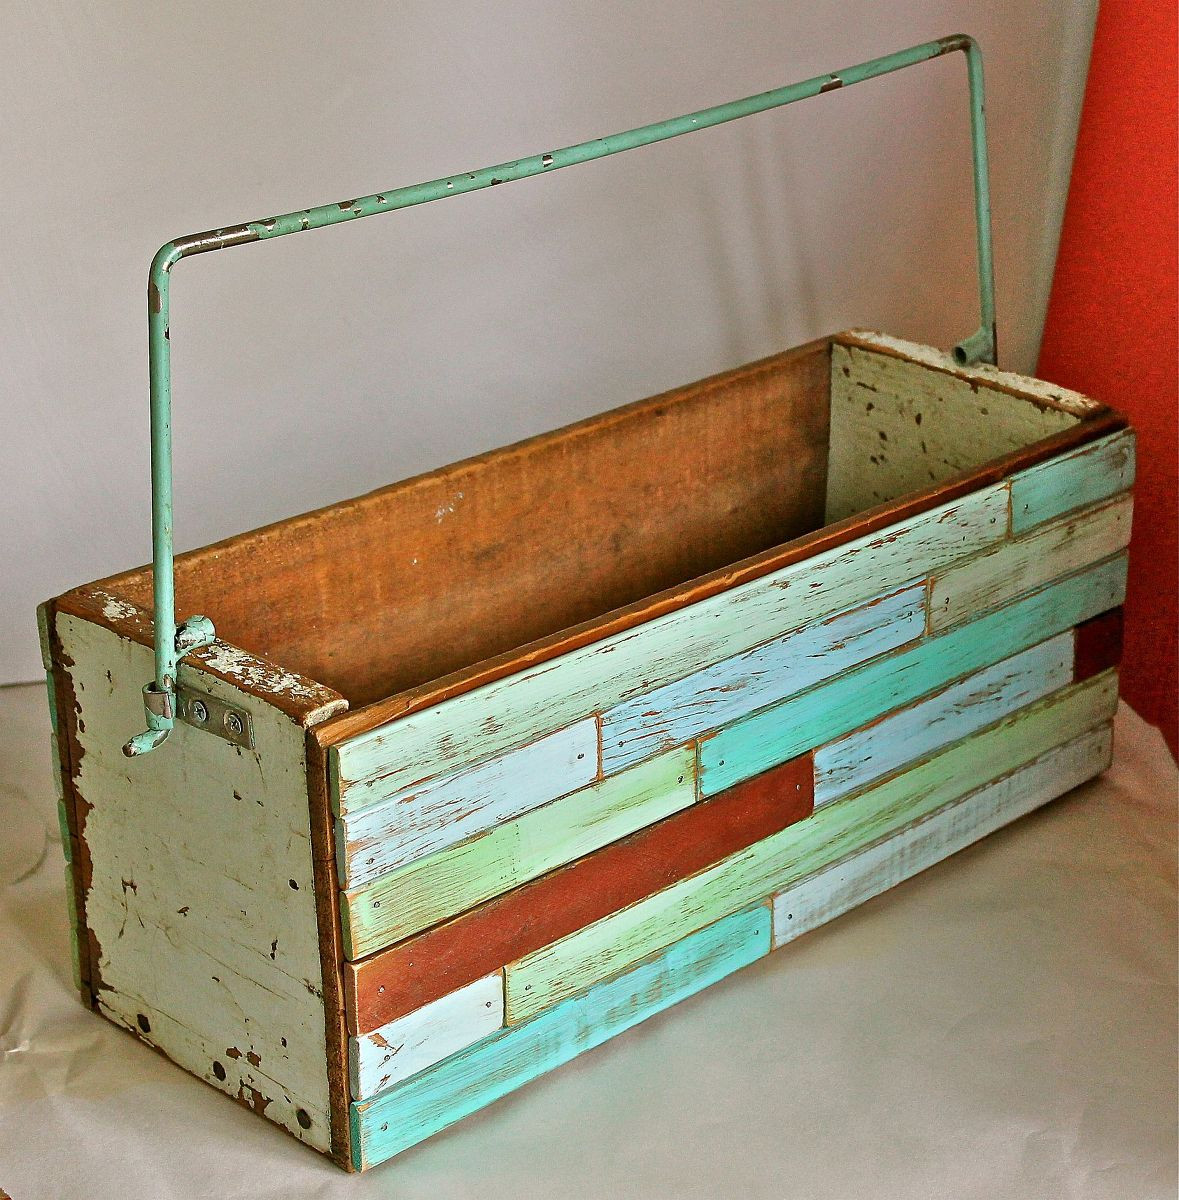 Best ideas about Wood Boxes DIY . Save or Pin DIY Repurposed Wooden Boxes Now.